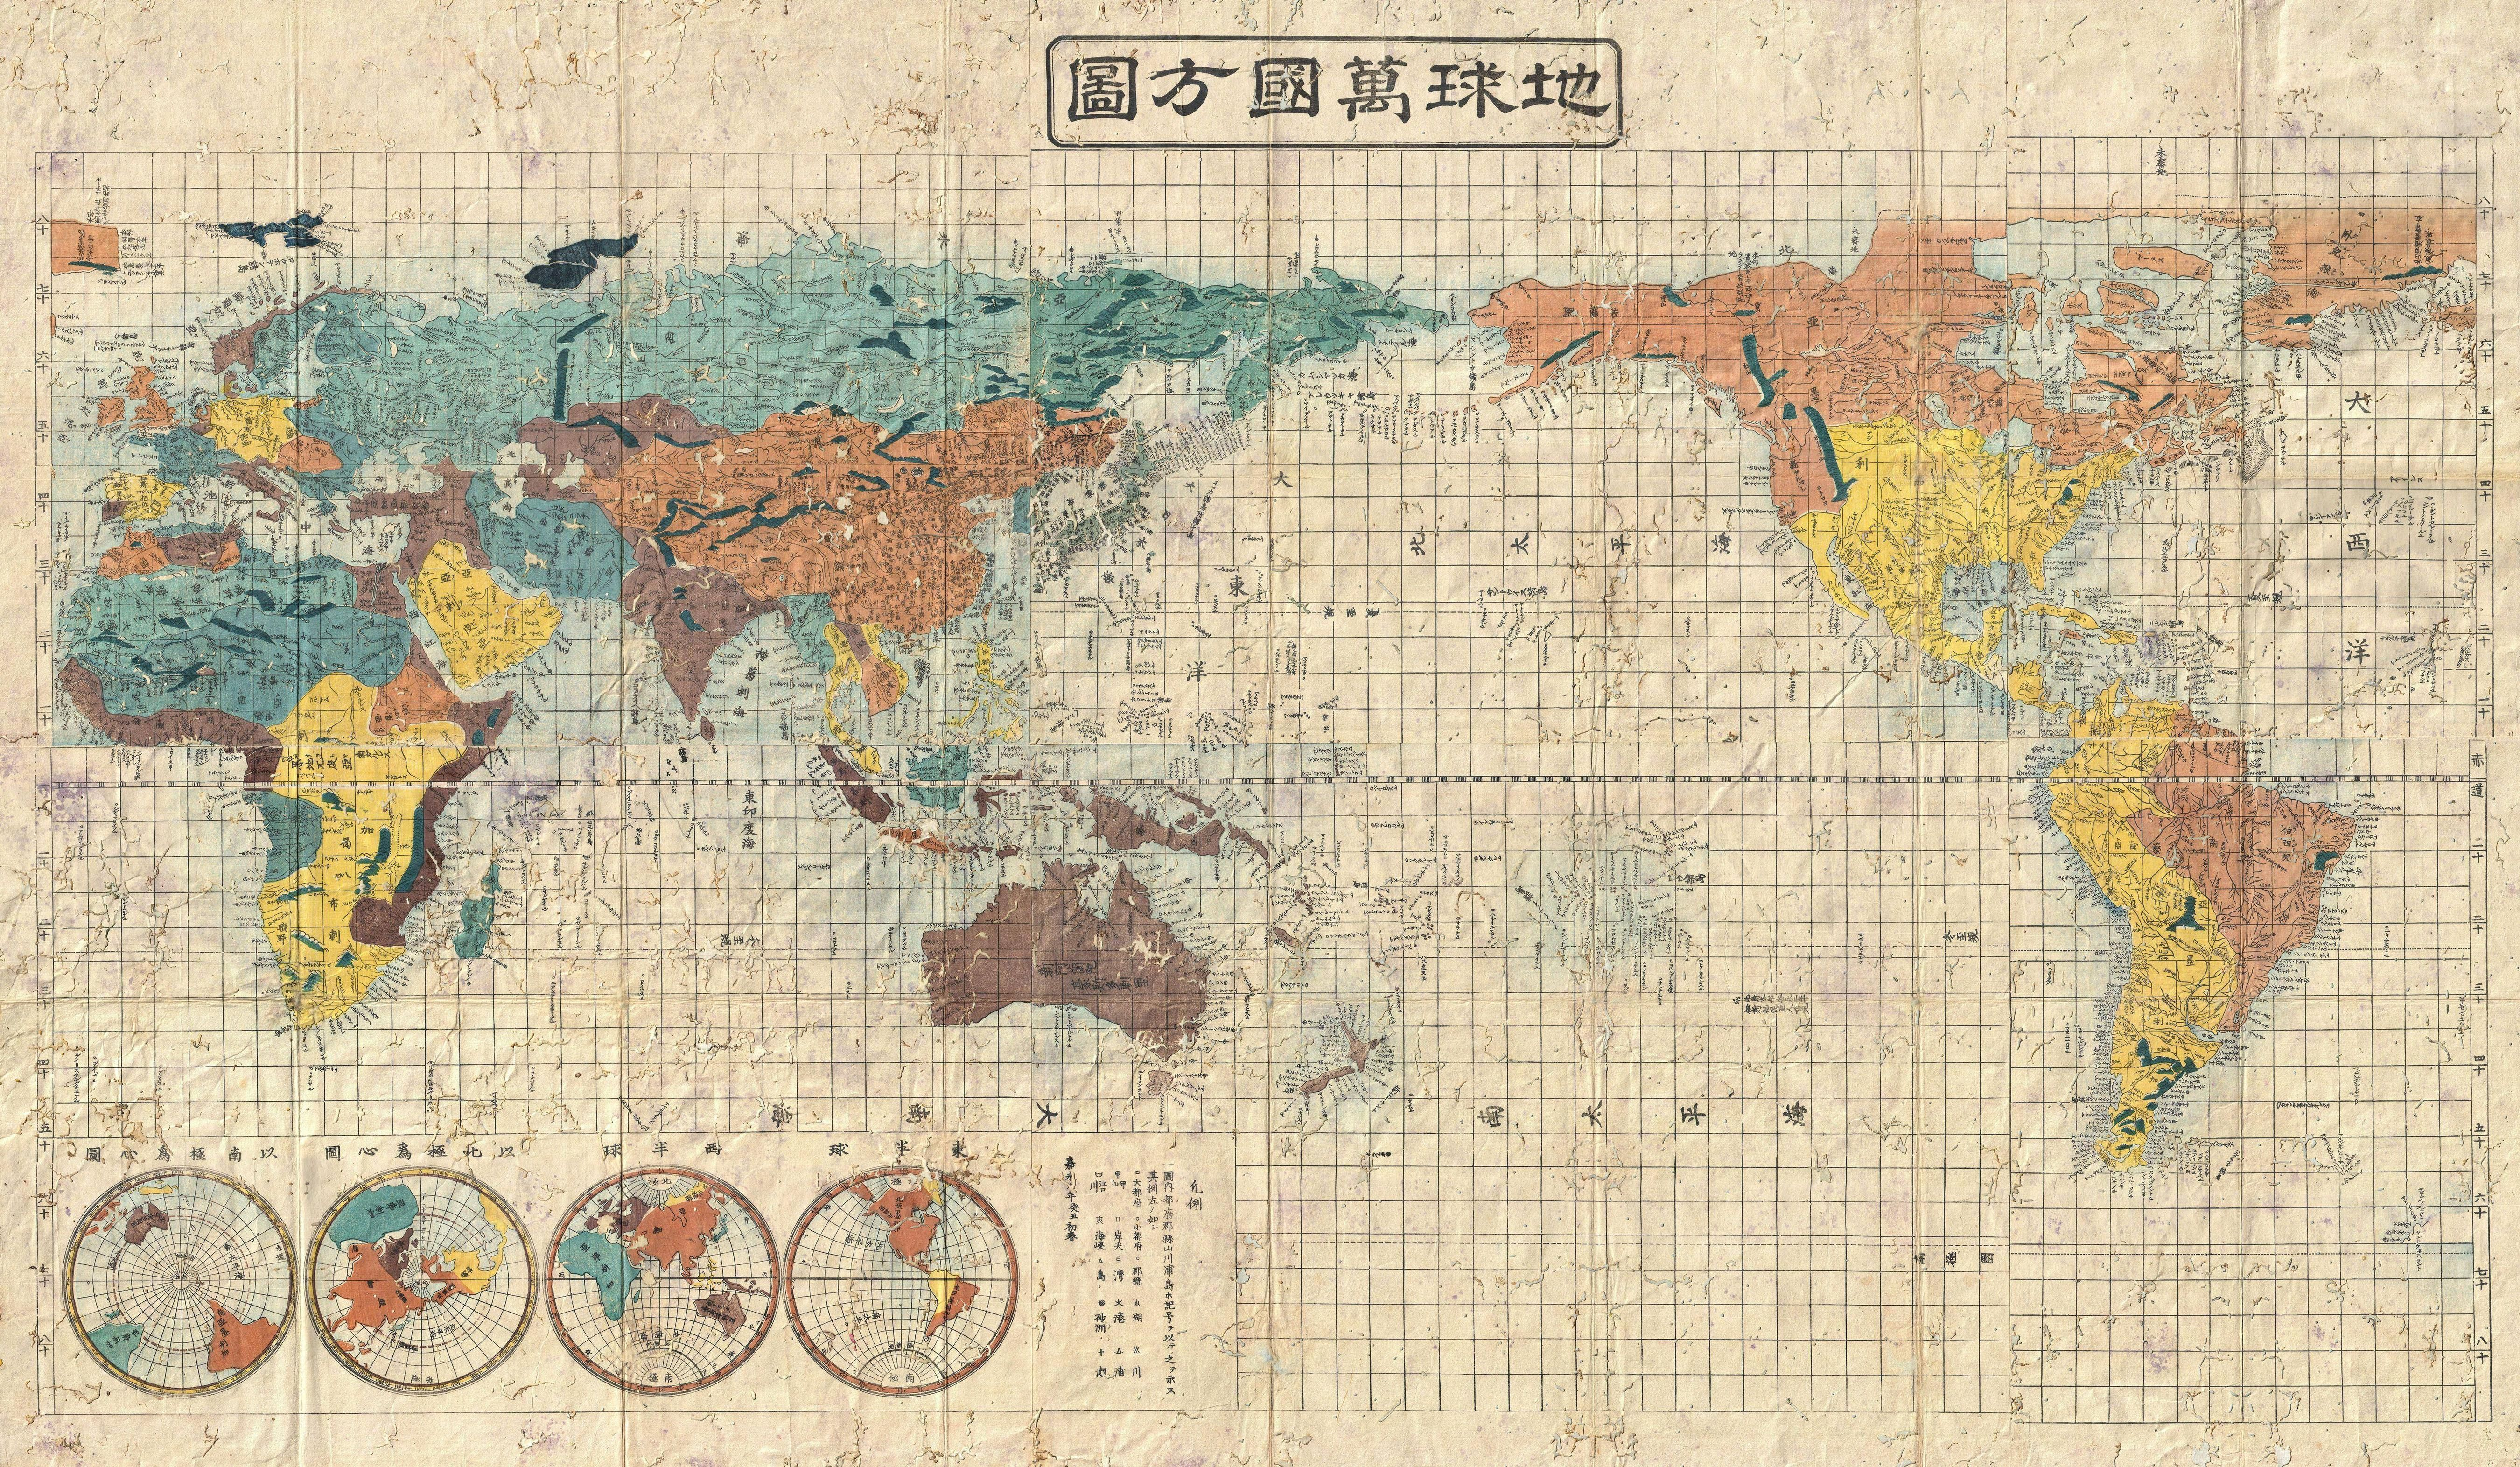 Japanese world map 1853 map japan mapporn interesting stuff shintei chikyu bankoku hozu square map of all the countries on the globe a very interesting 1853 kaei japanese world map by suido nakajima gumiabroncs Images